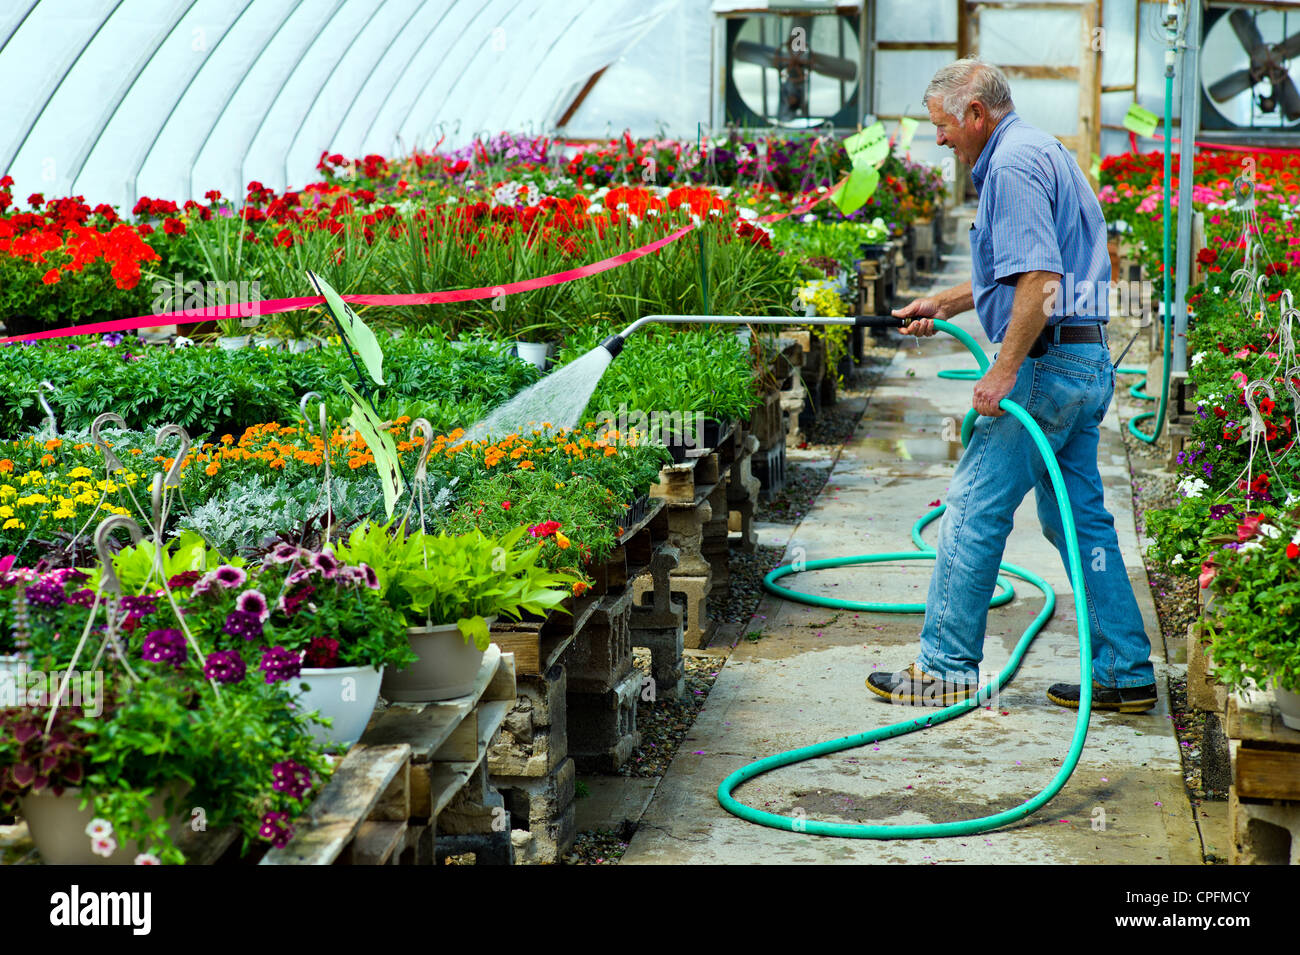 Gardener watering fresh spring flowers for sale at a small town nursery. - Stock Image